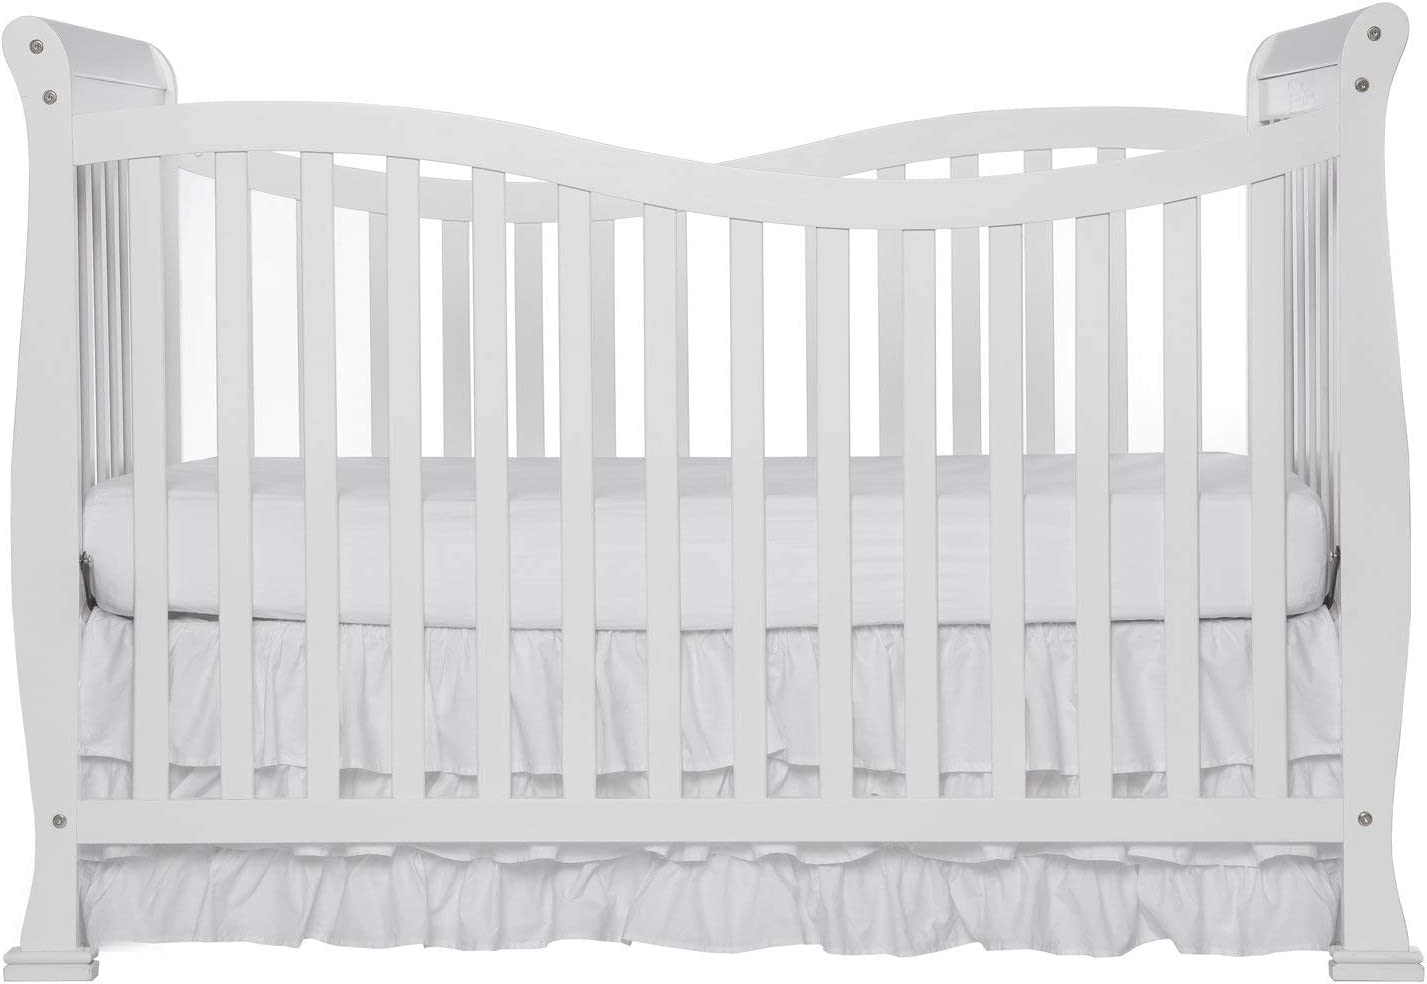 VBARV Multifunctional Crib, Environmentally Friendly Solid Wood Crib, Large Size, Adjustable Gear, 7 in 1 Convertible Lifestyle Crib, Children's Bedroom Furniture